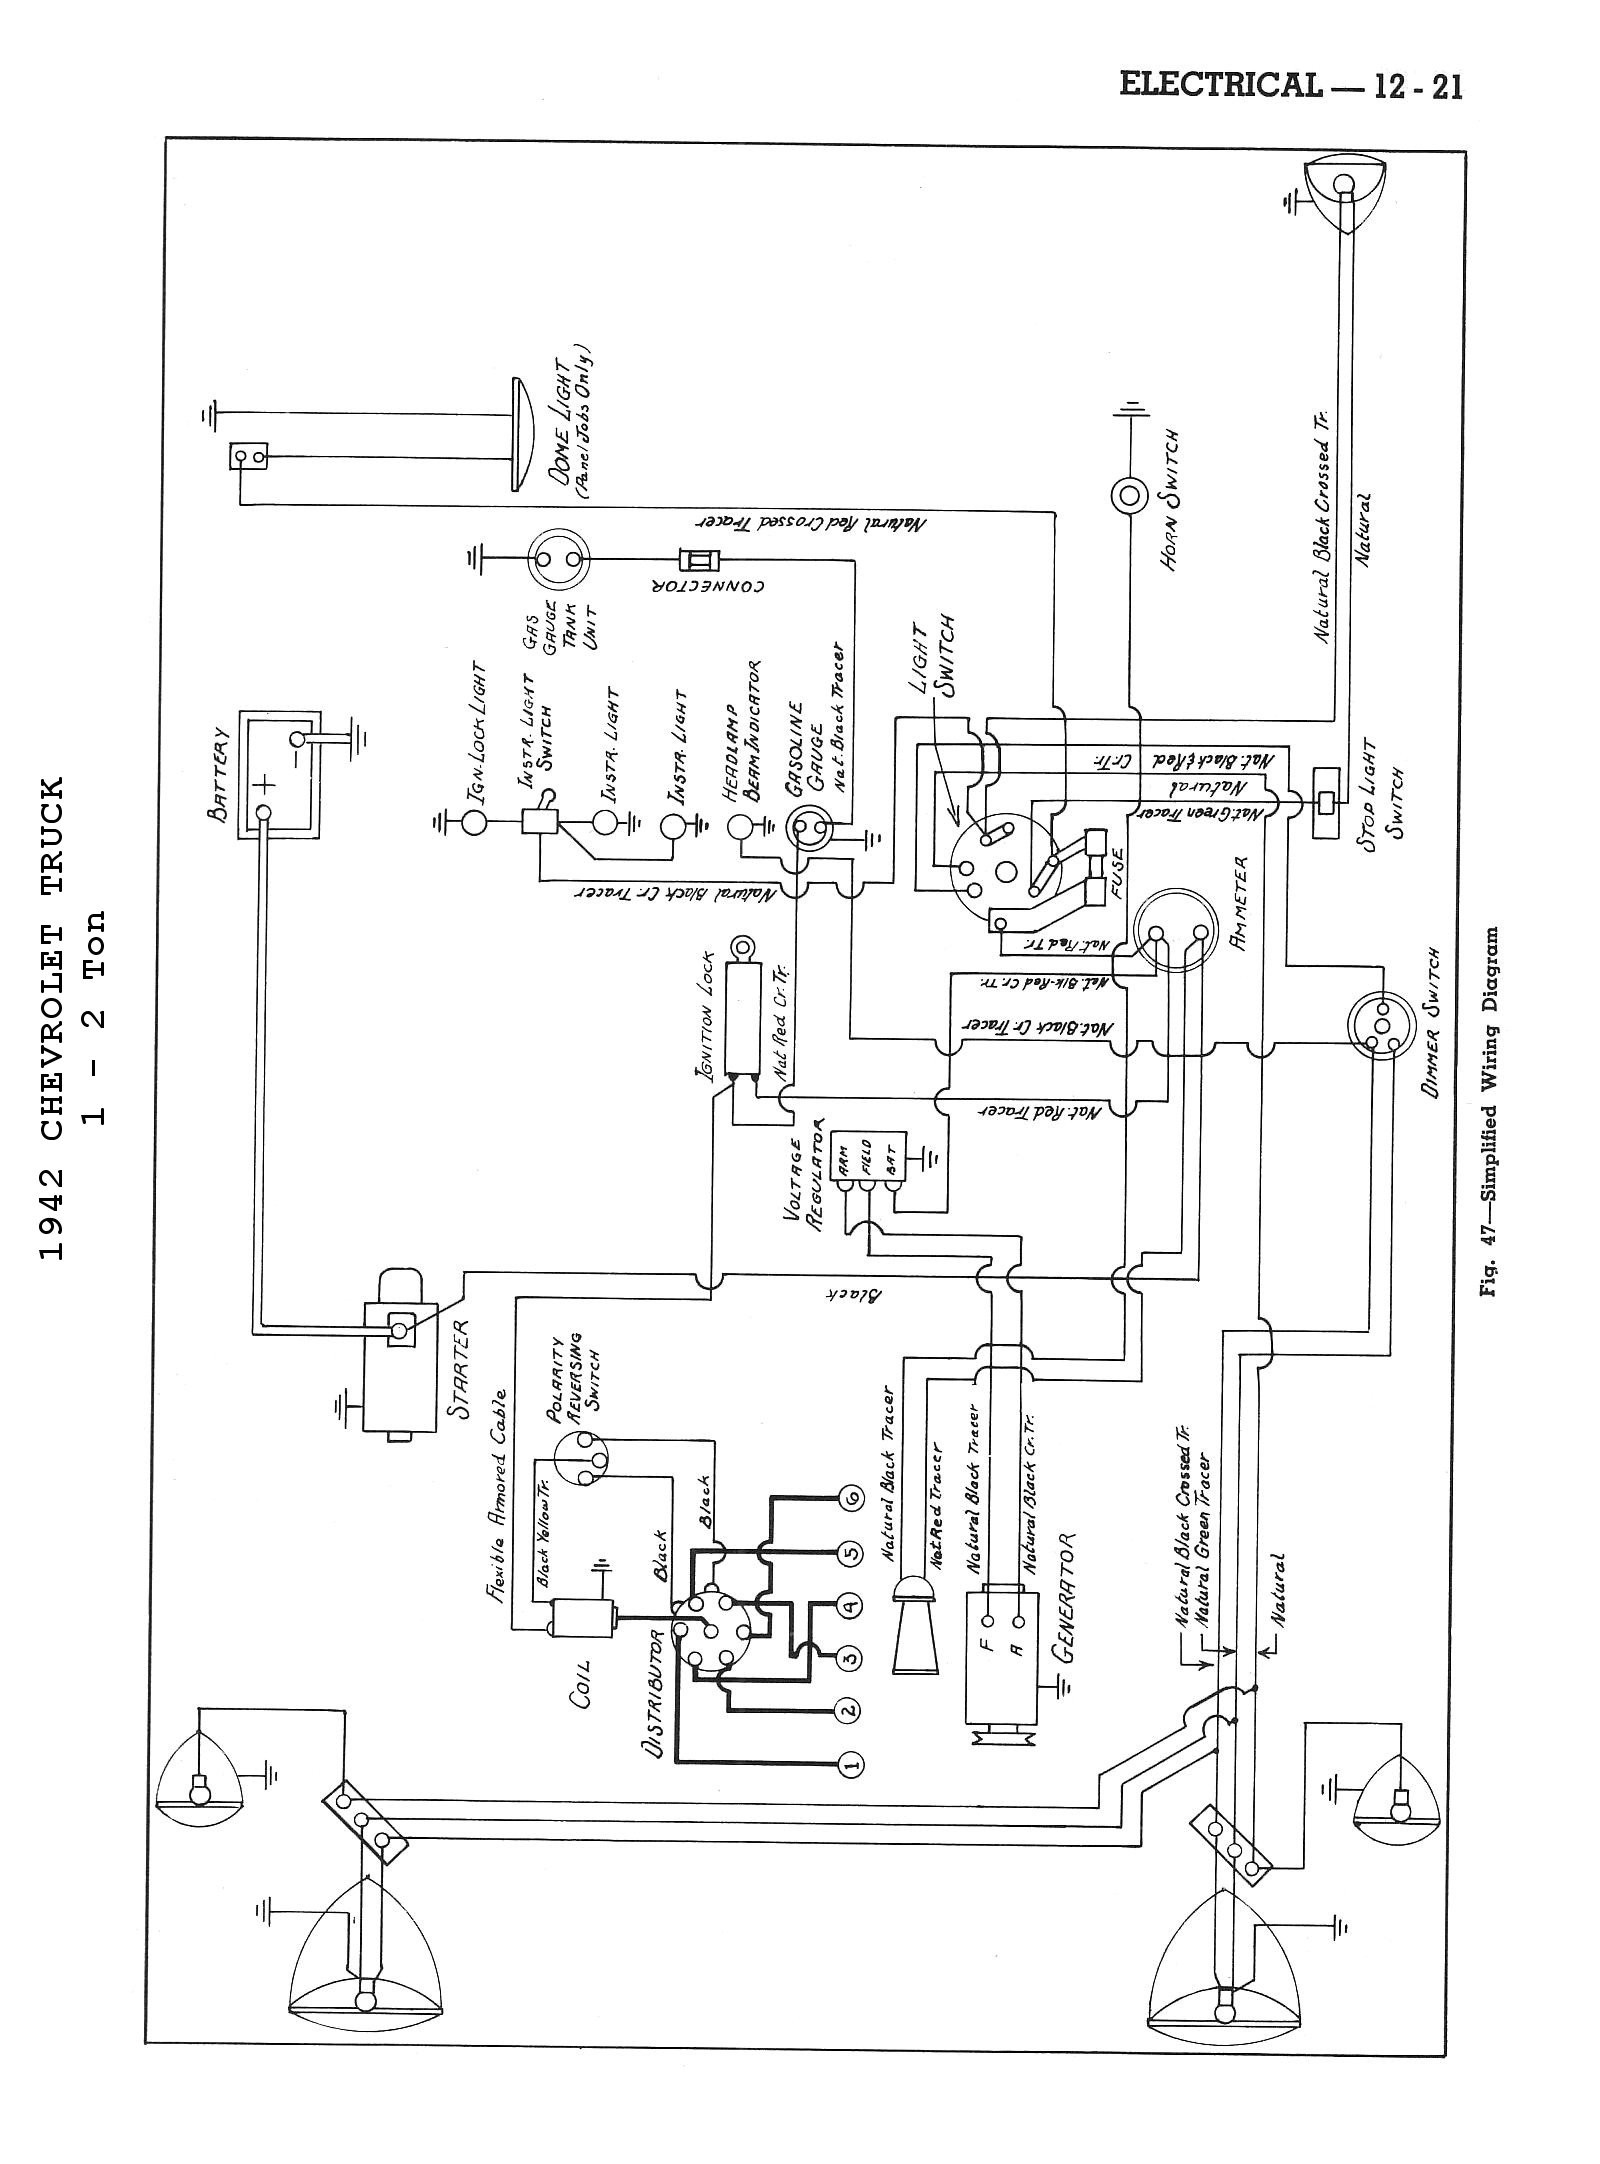 Truck Air System Diagram Chevy Wiring Diagrams Of Truck Air System Diagram